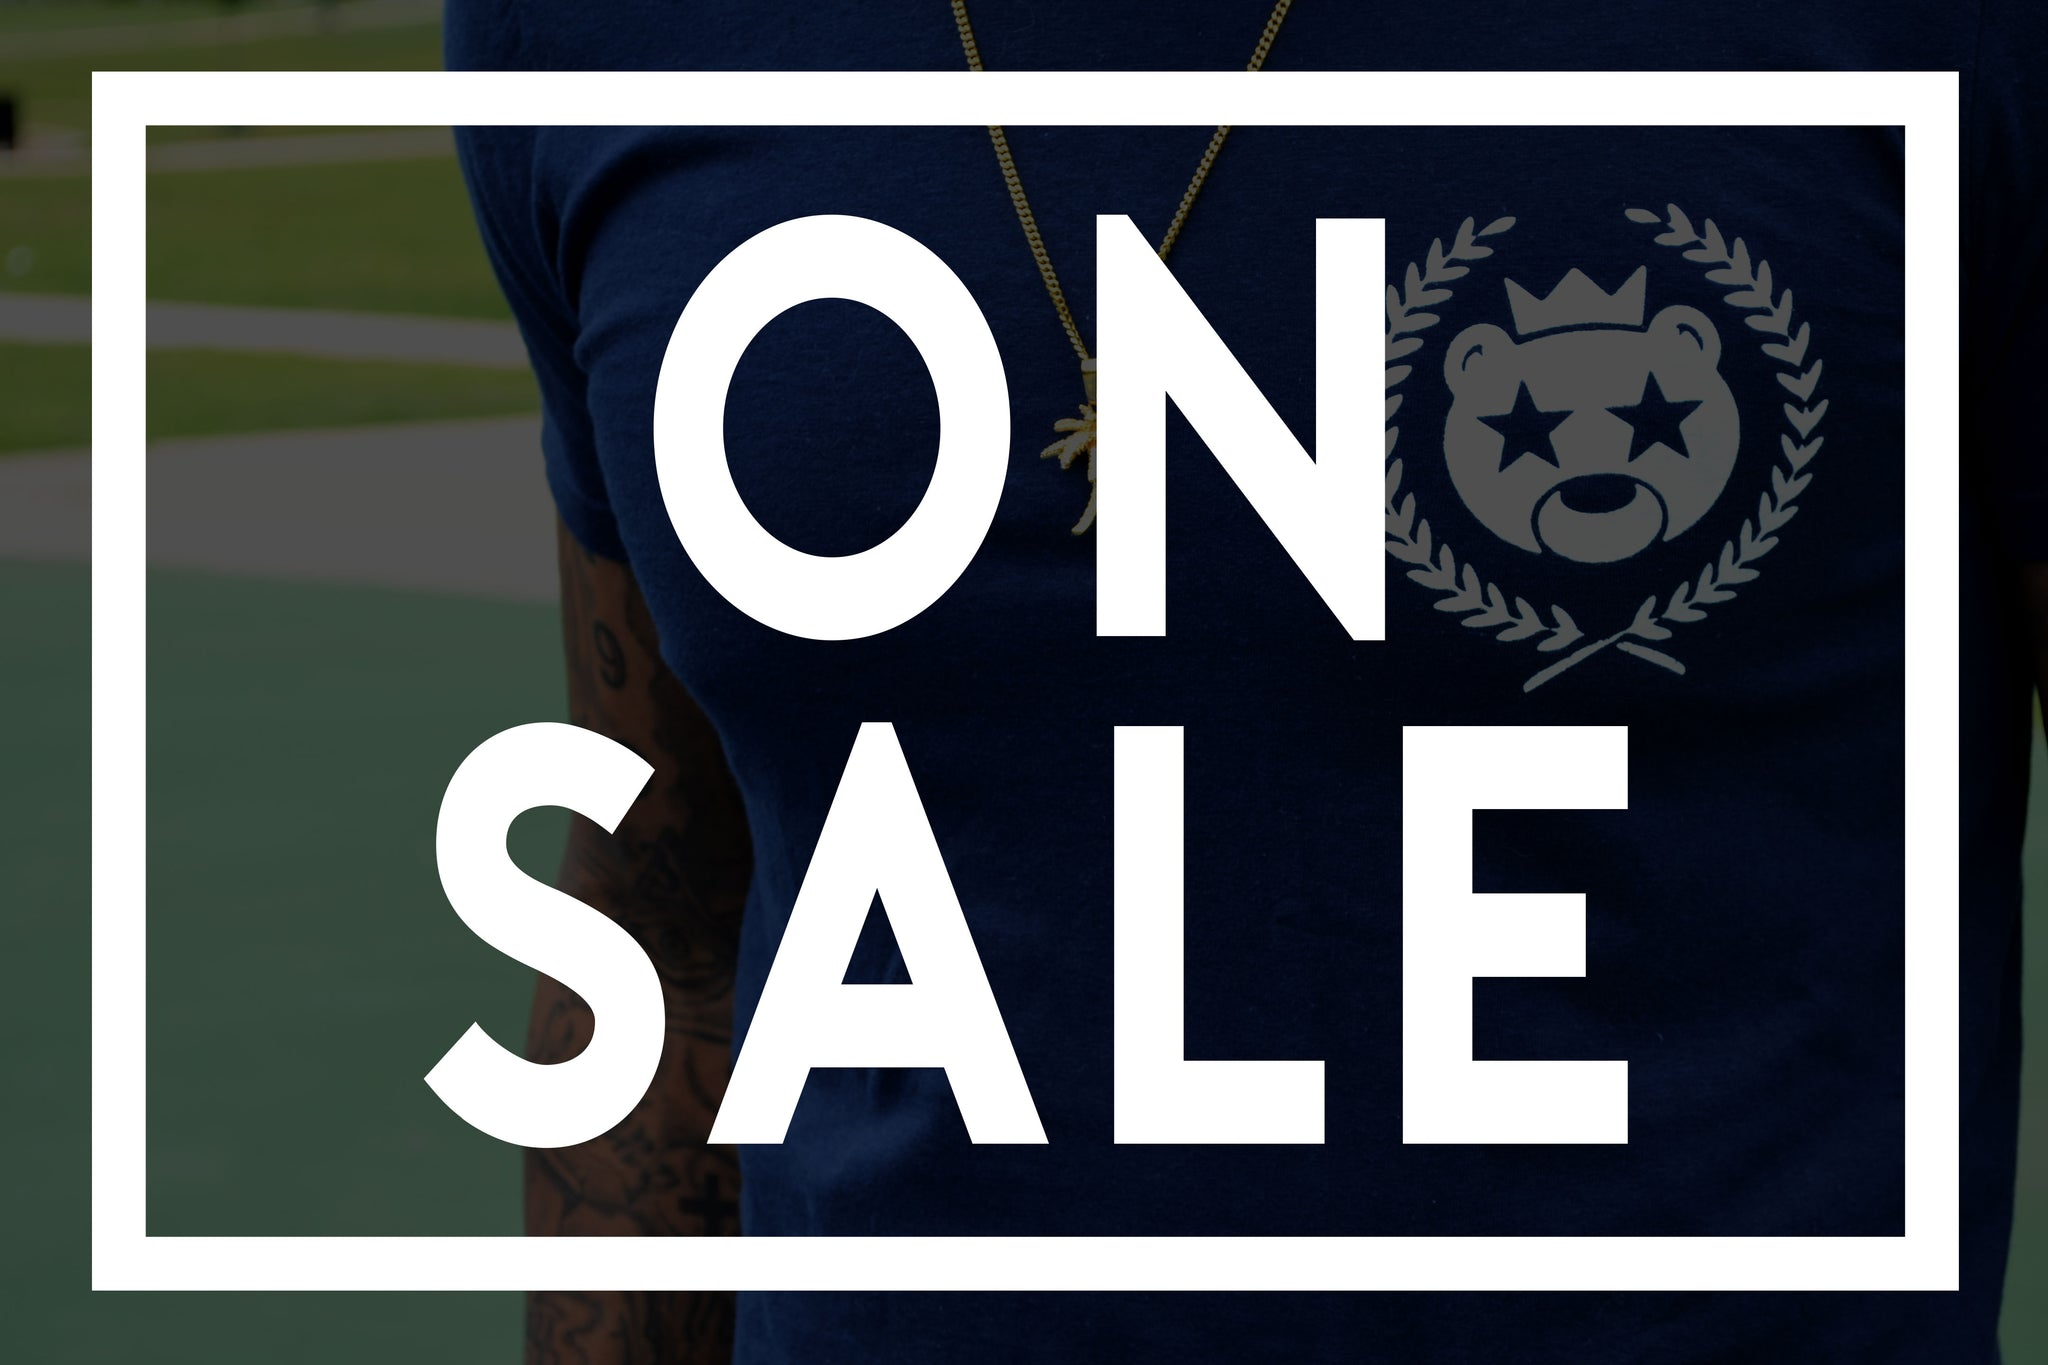 OGS86 sale items, fresh from one of the Top Streetwear brands in the country, representing your cool tees and gear.